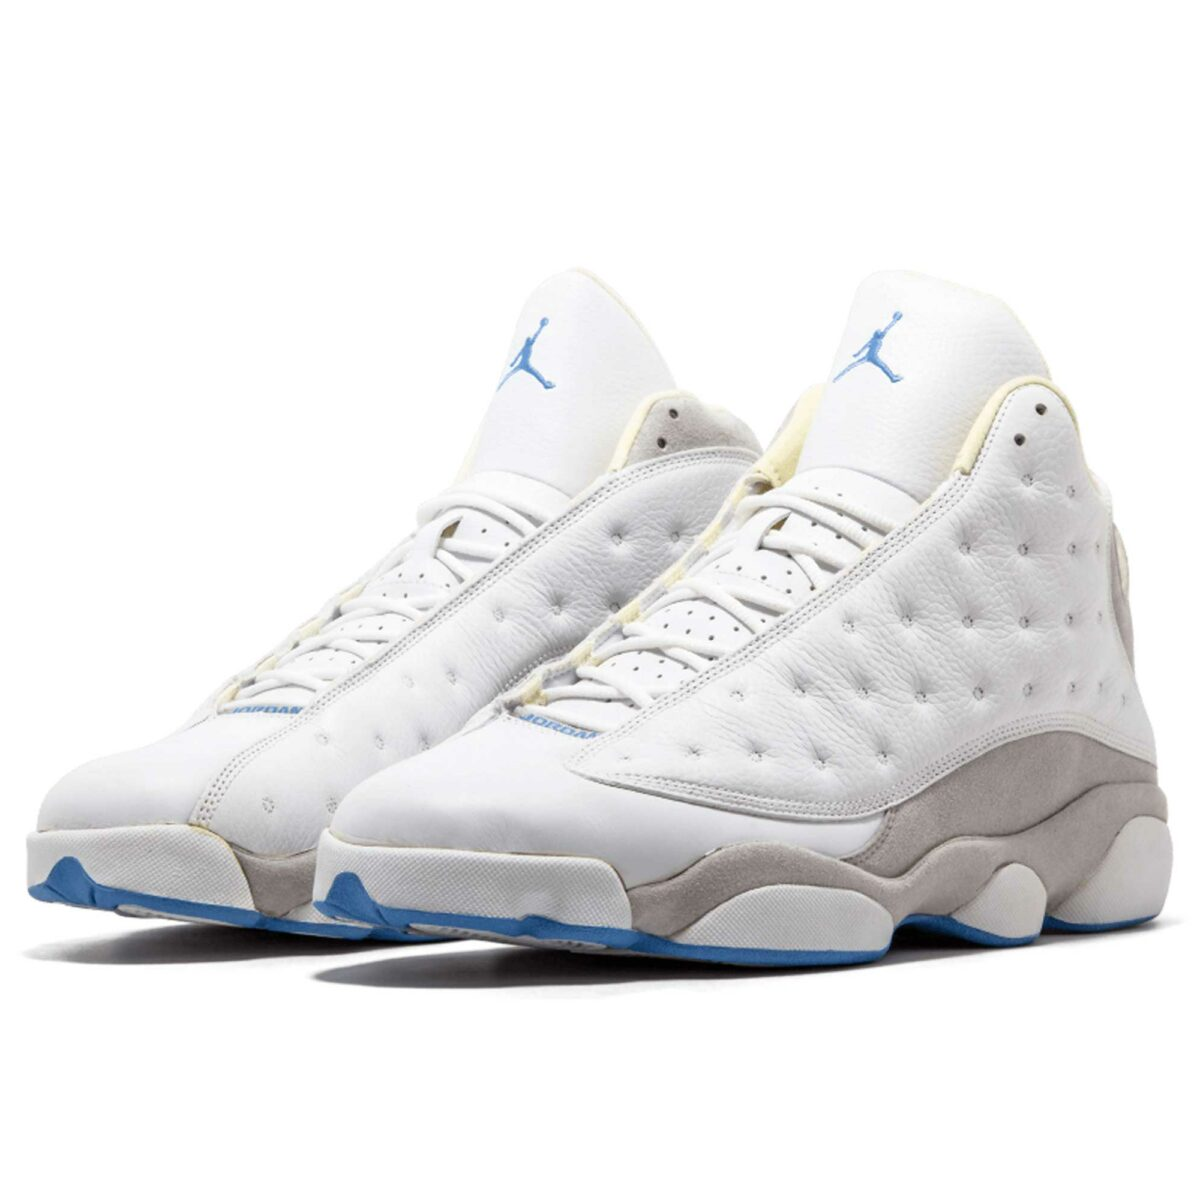 nike air Jordan retro 13 white 310004_103 купить